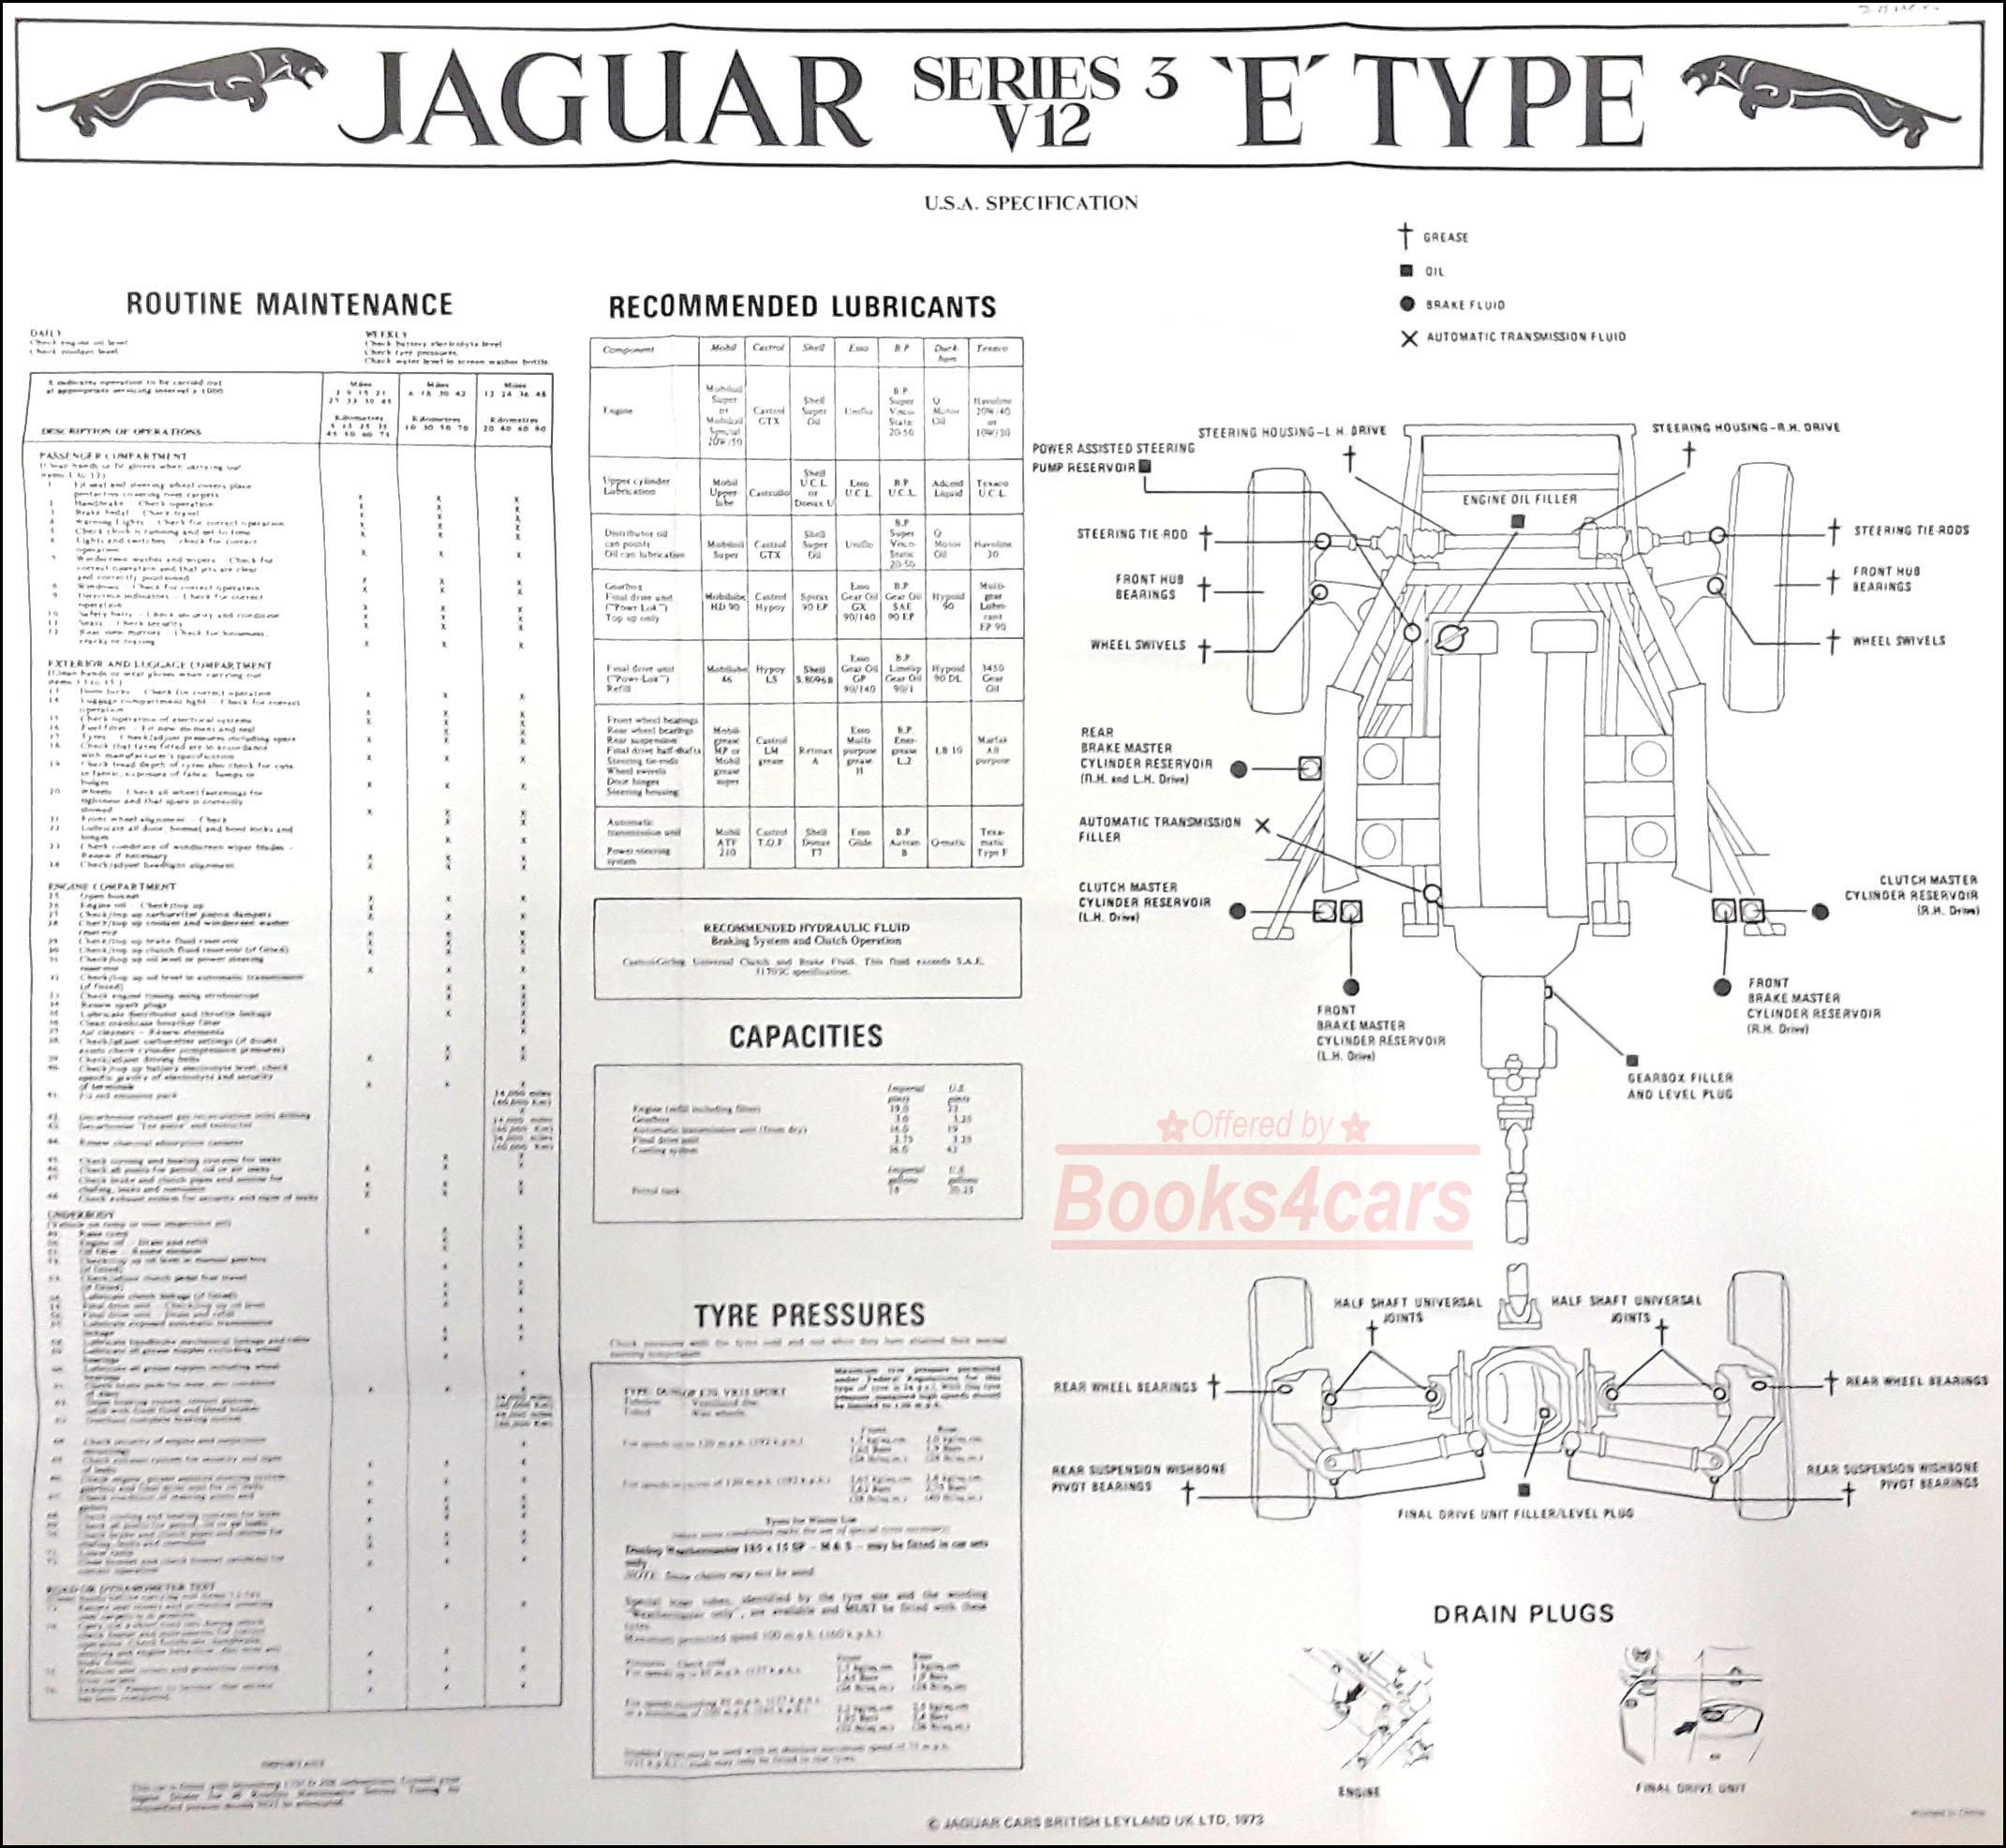 1975 Jaguar 4 2 Wiring Diagram Reveolution Of Fender Jazzmaster Kit Maintenance Xke E Type Electrical V12 S3 1971 Ebay Rh Com Bass Old Guitar